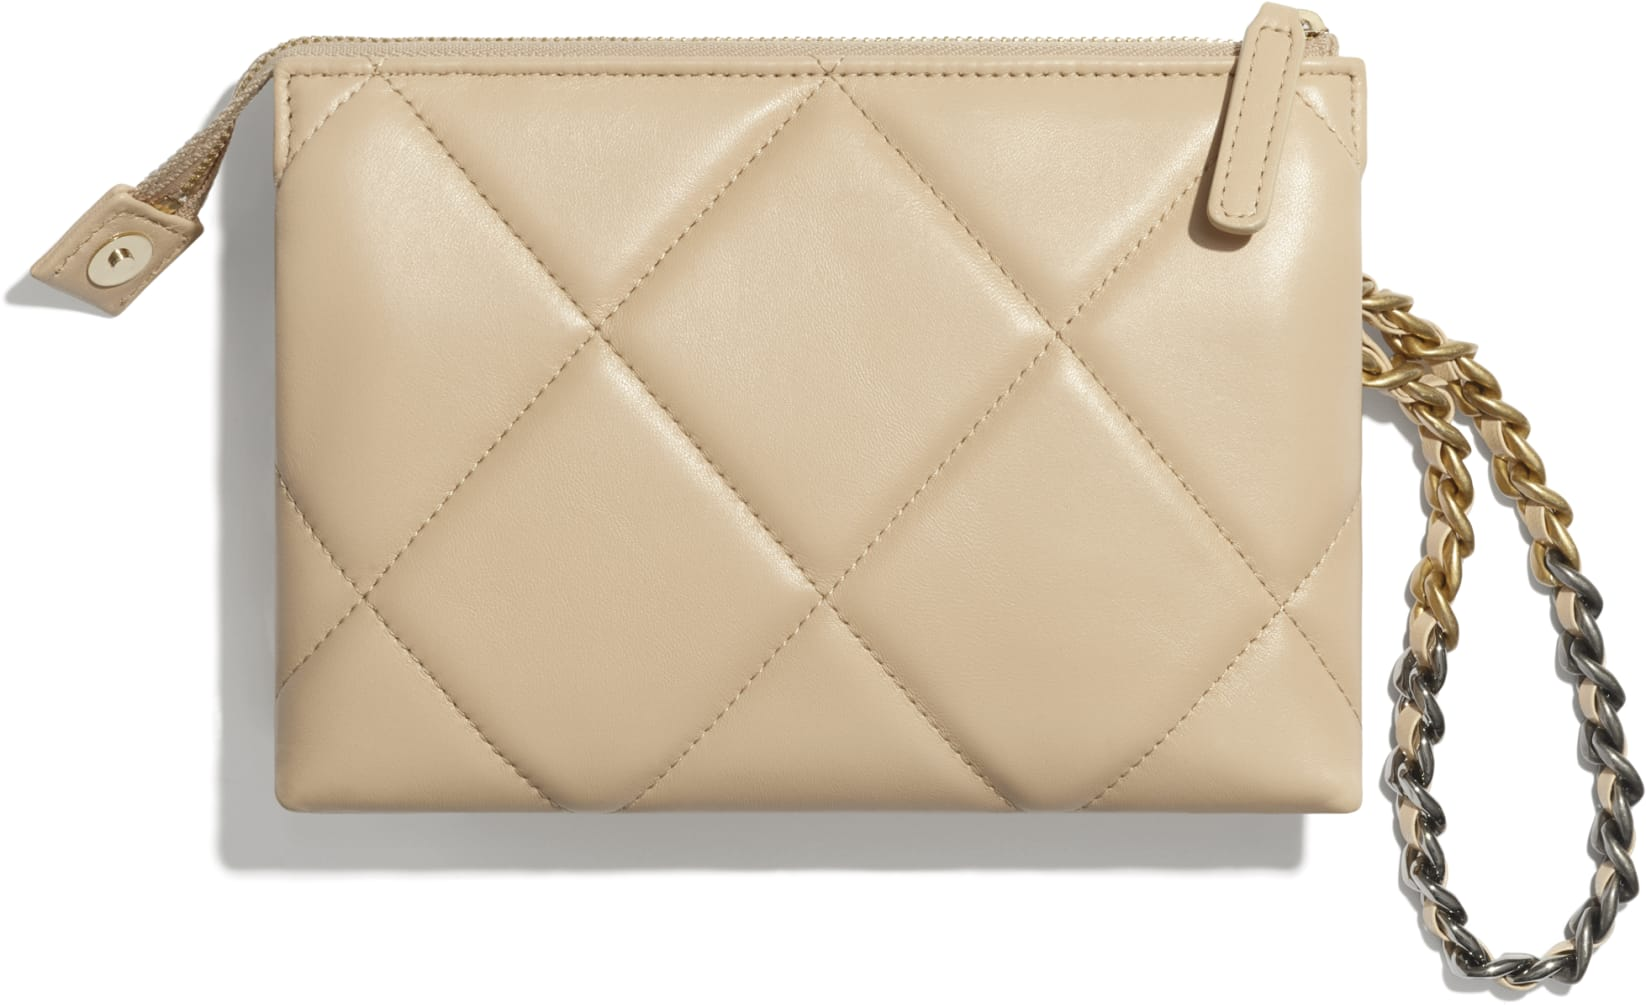 CHANEL 19 Small Pouch with Handle